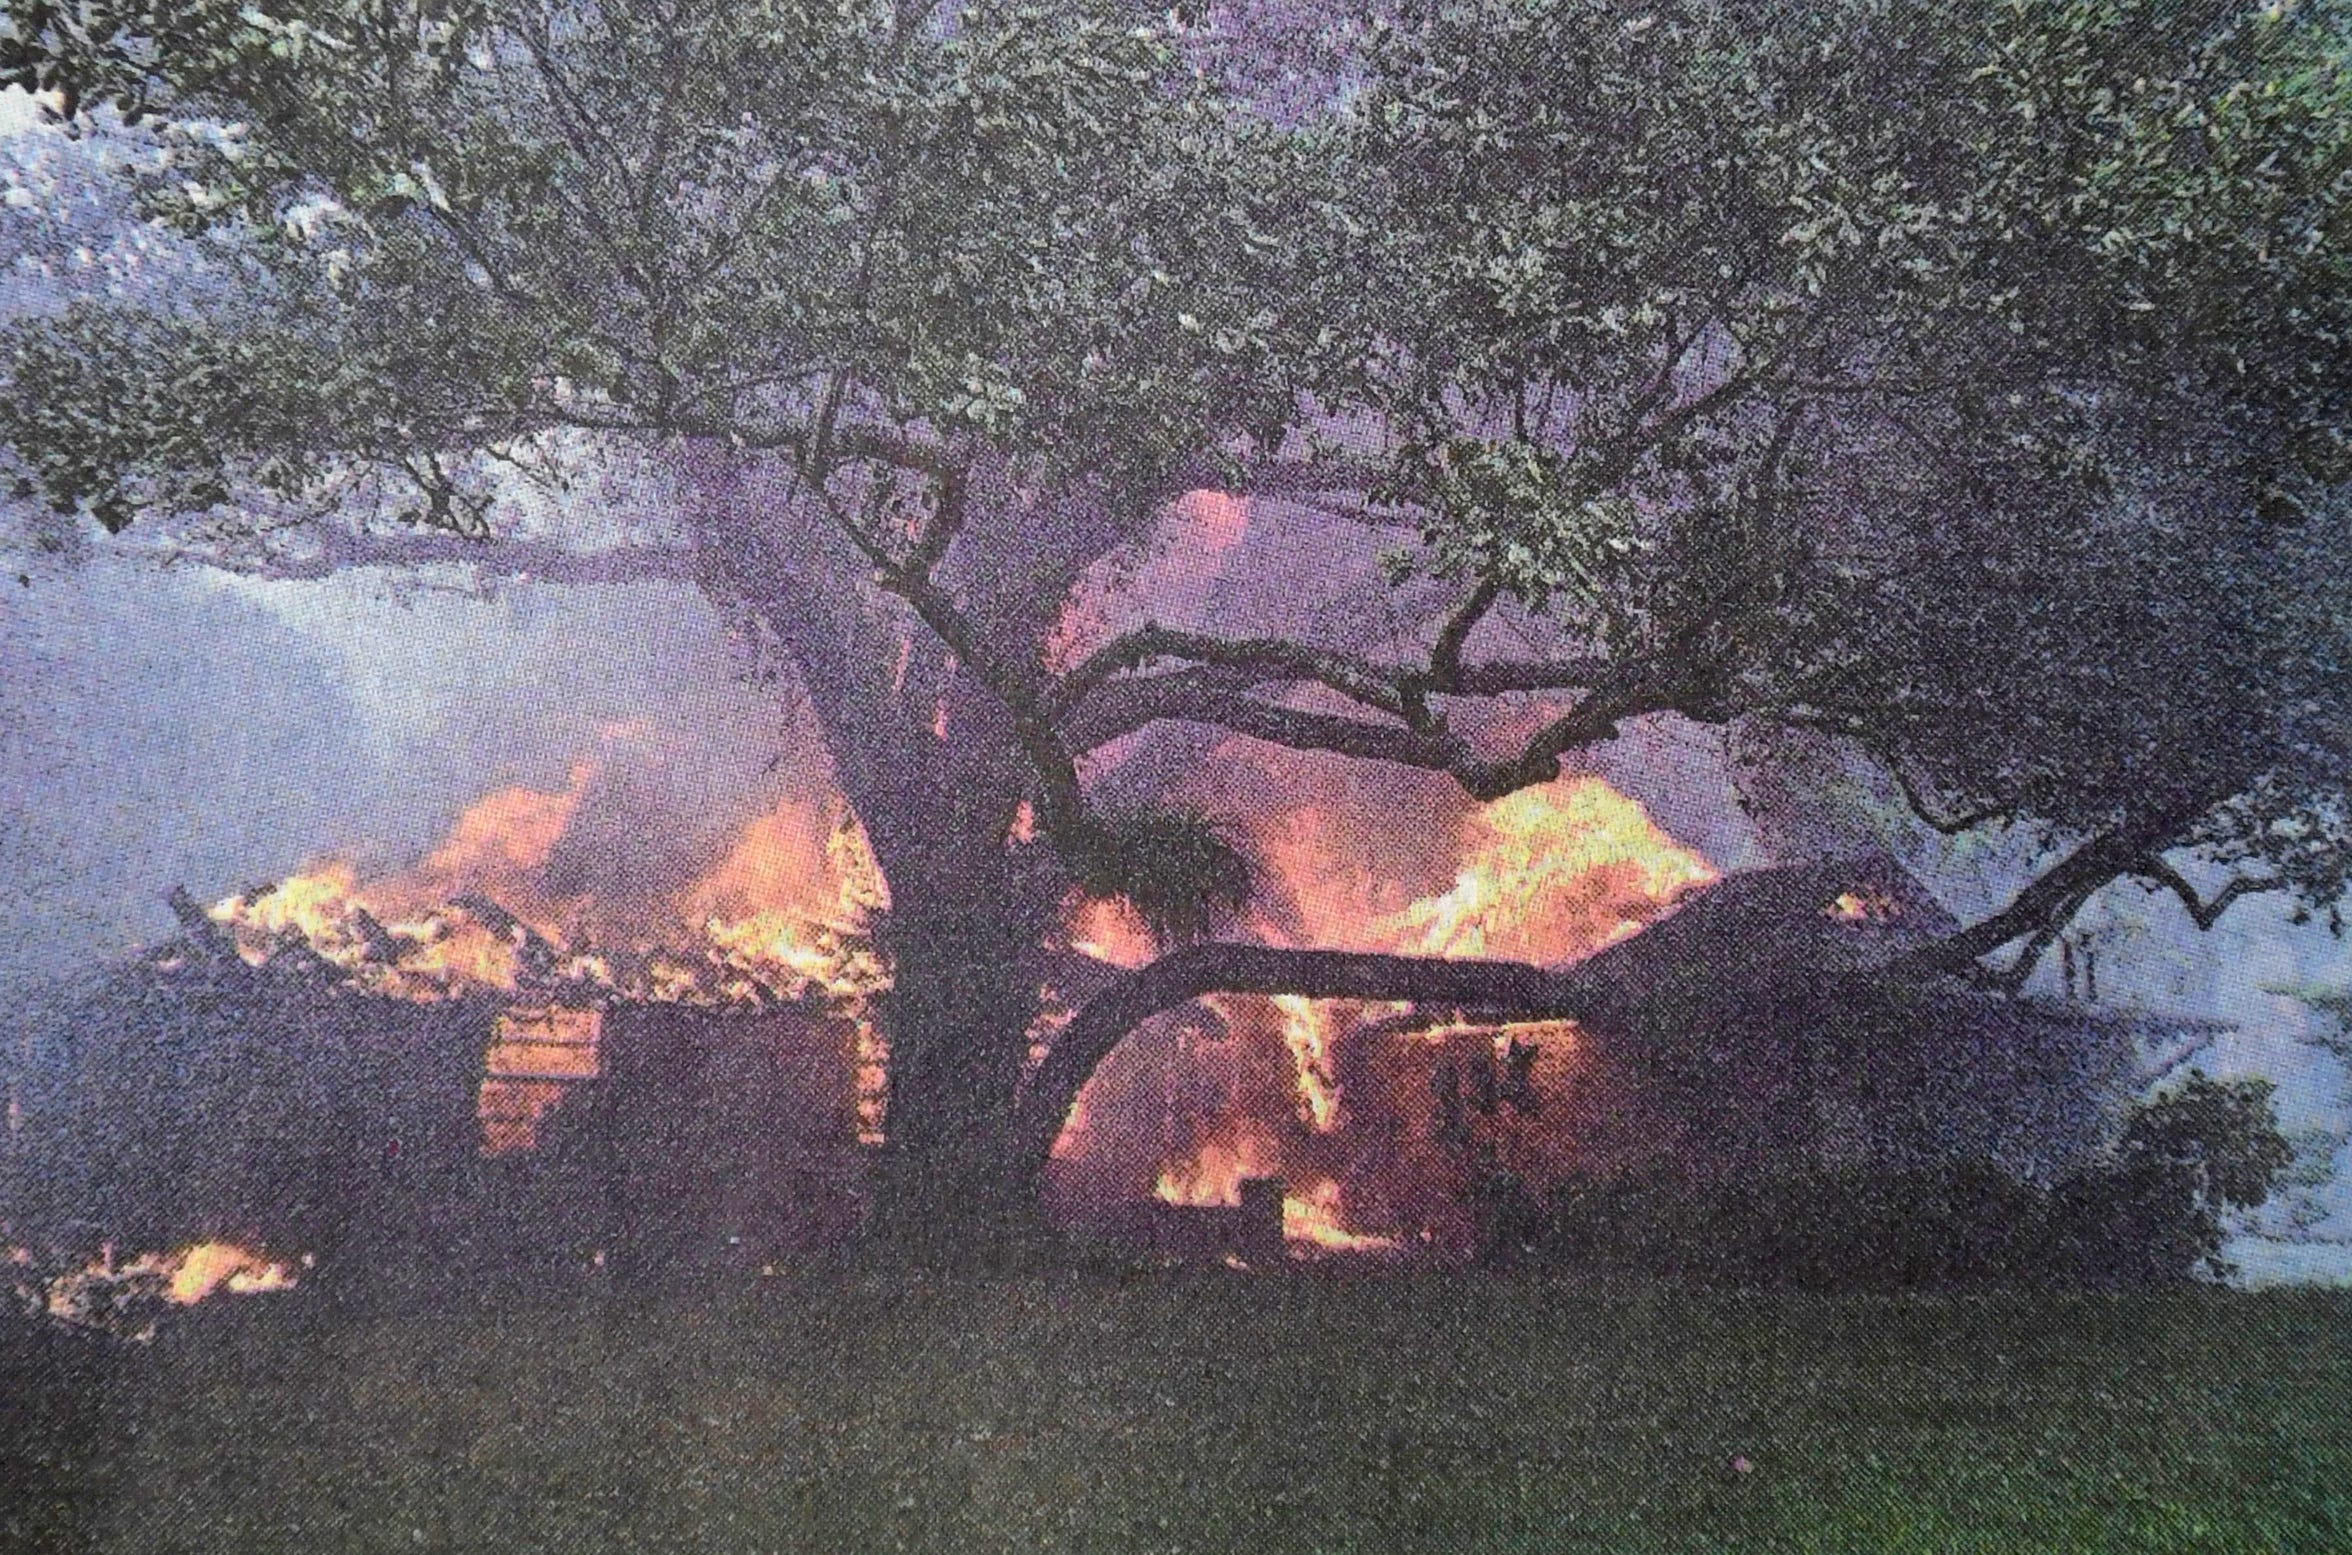 The brick house belonging to Michael and Linda Boogaart on Urbino Avenue erupts into flames while a tree in front of the home remains largely unscathed on Thursday, April 15, 1999, in Port St. Lucie.